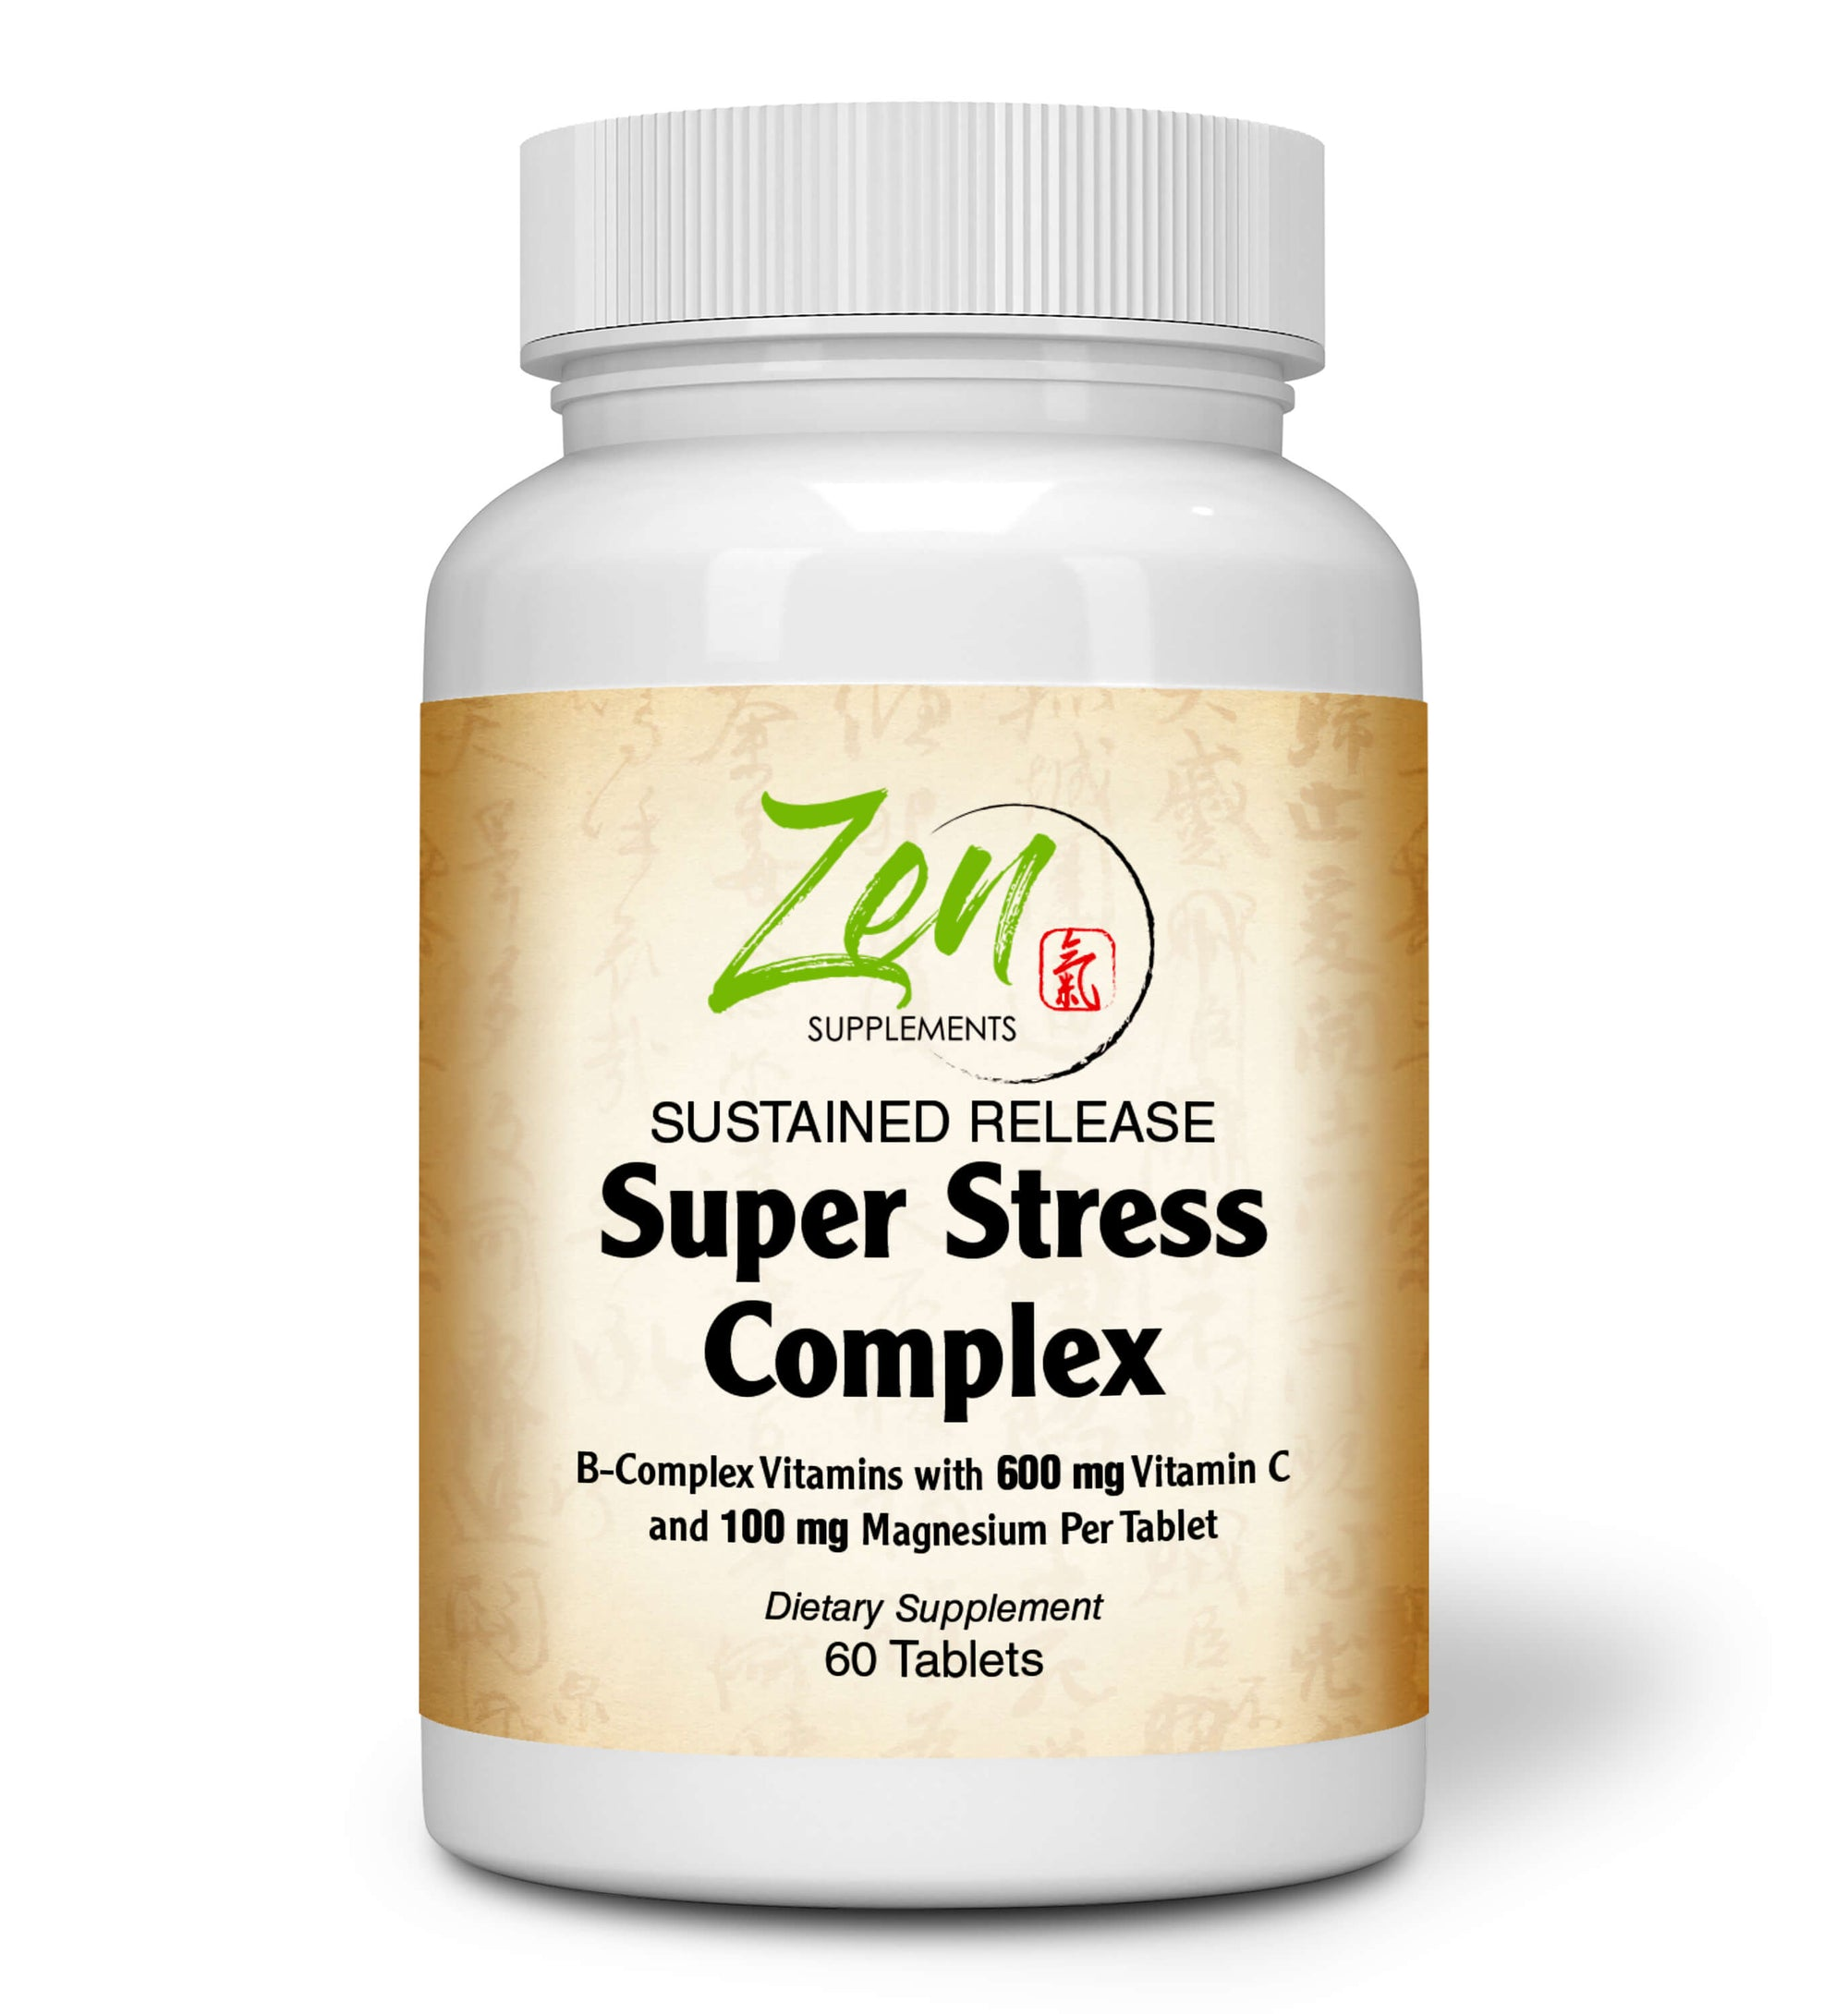 Super Stress Complex Multi - With B Vitamins & Calming Herbs - 60 Tabs